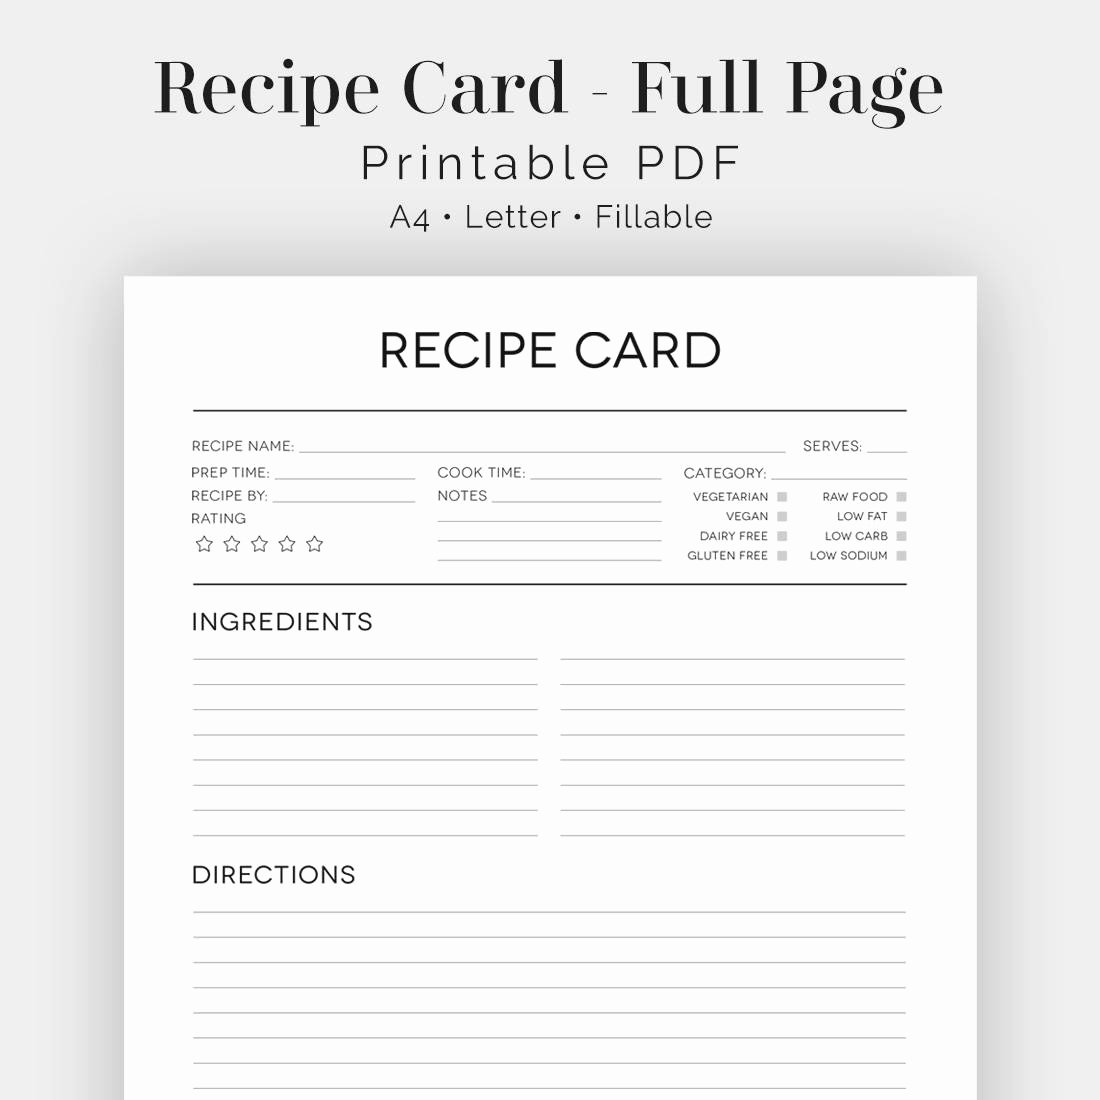 Fillable Recipe Card Template Luxury Recipe Card Full Page Black & White Fillable Printable